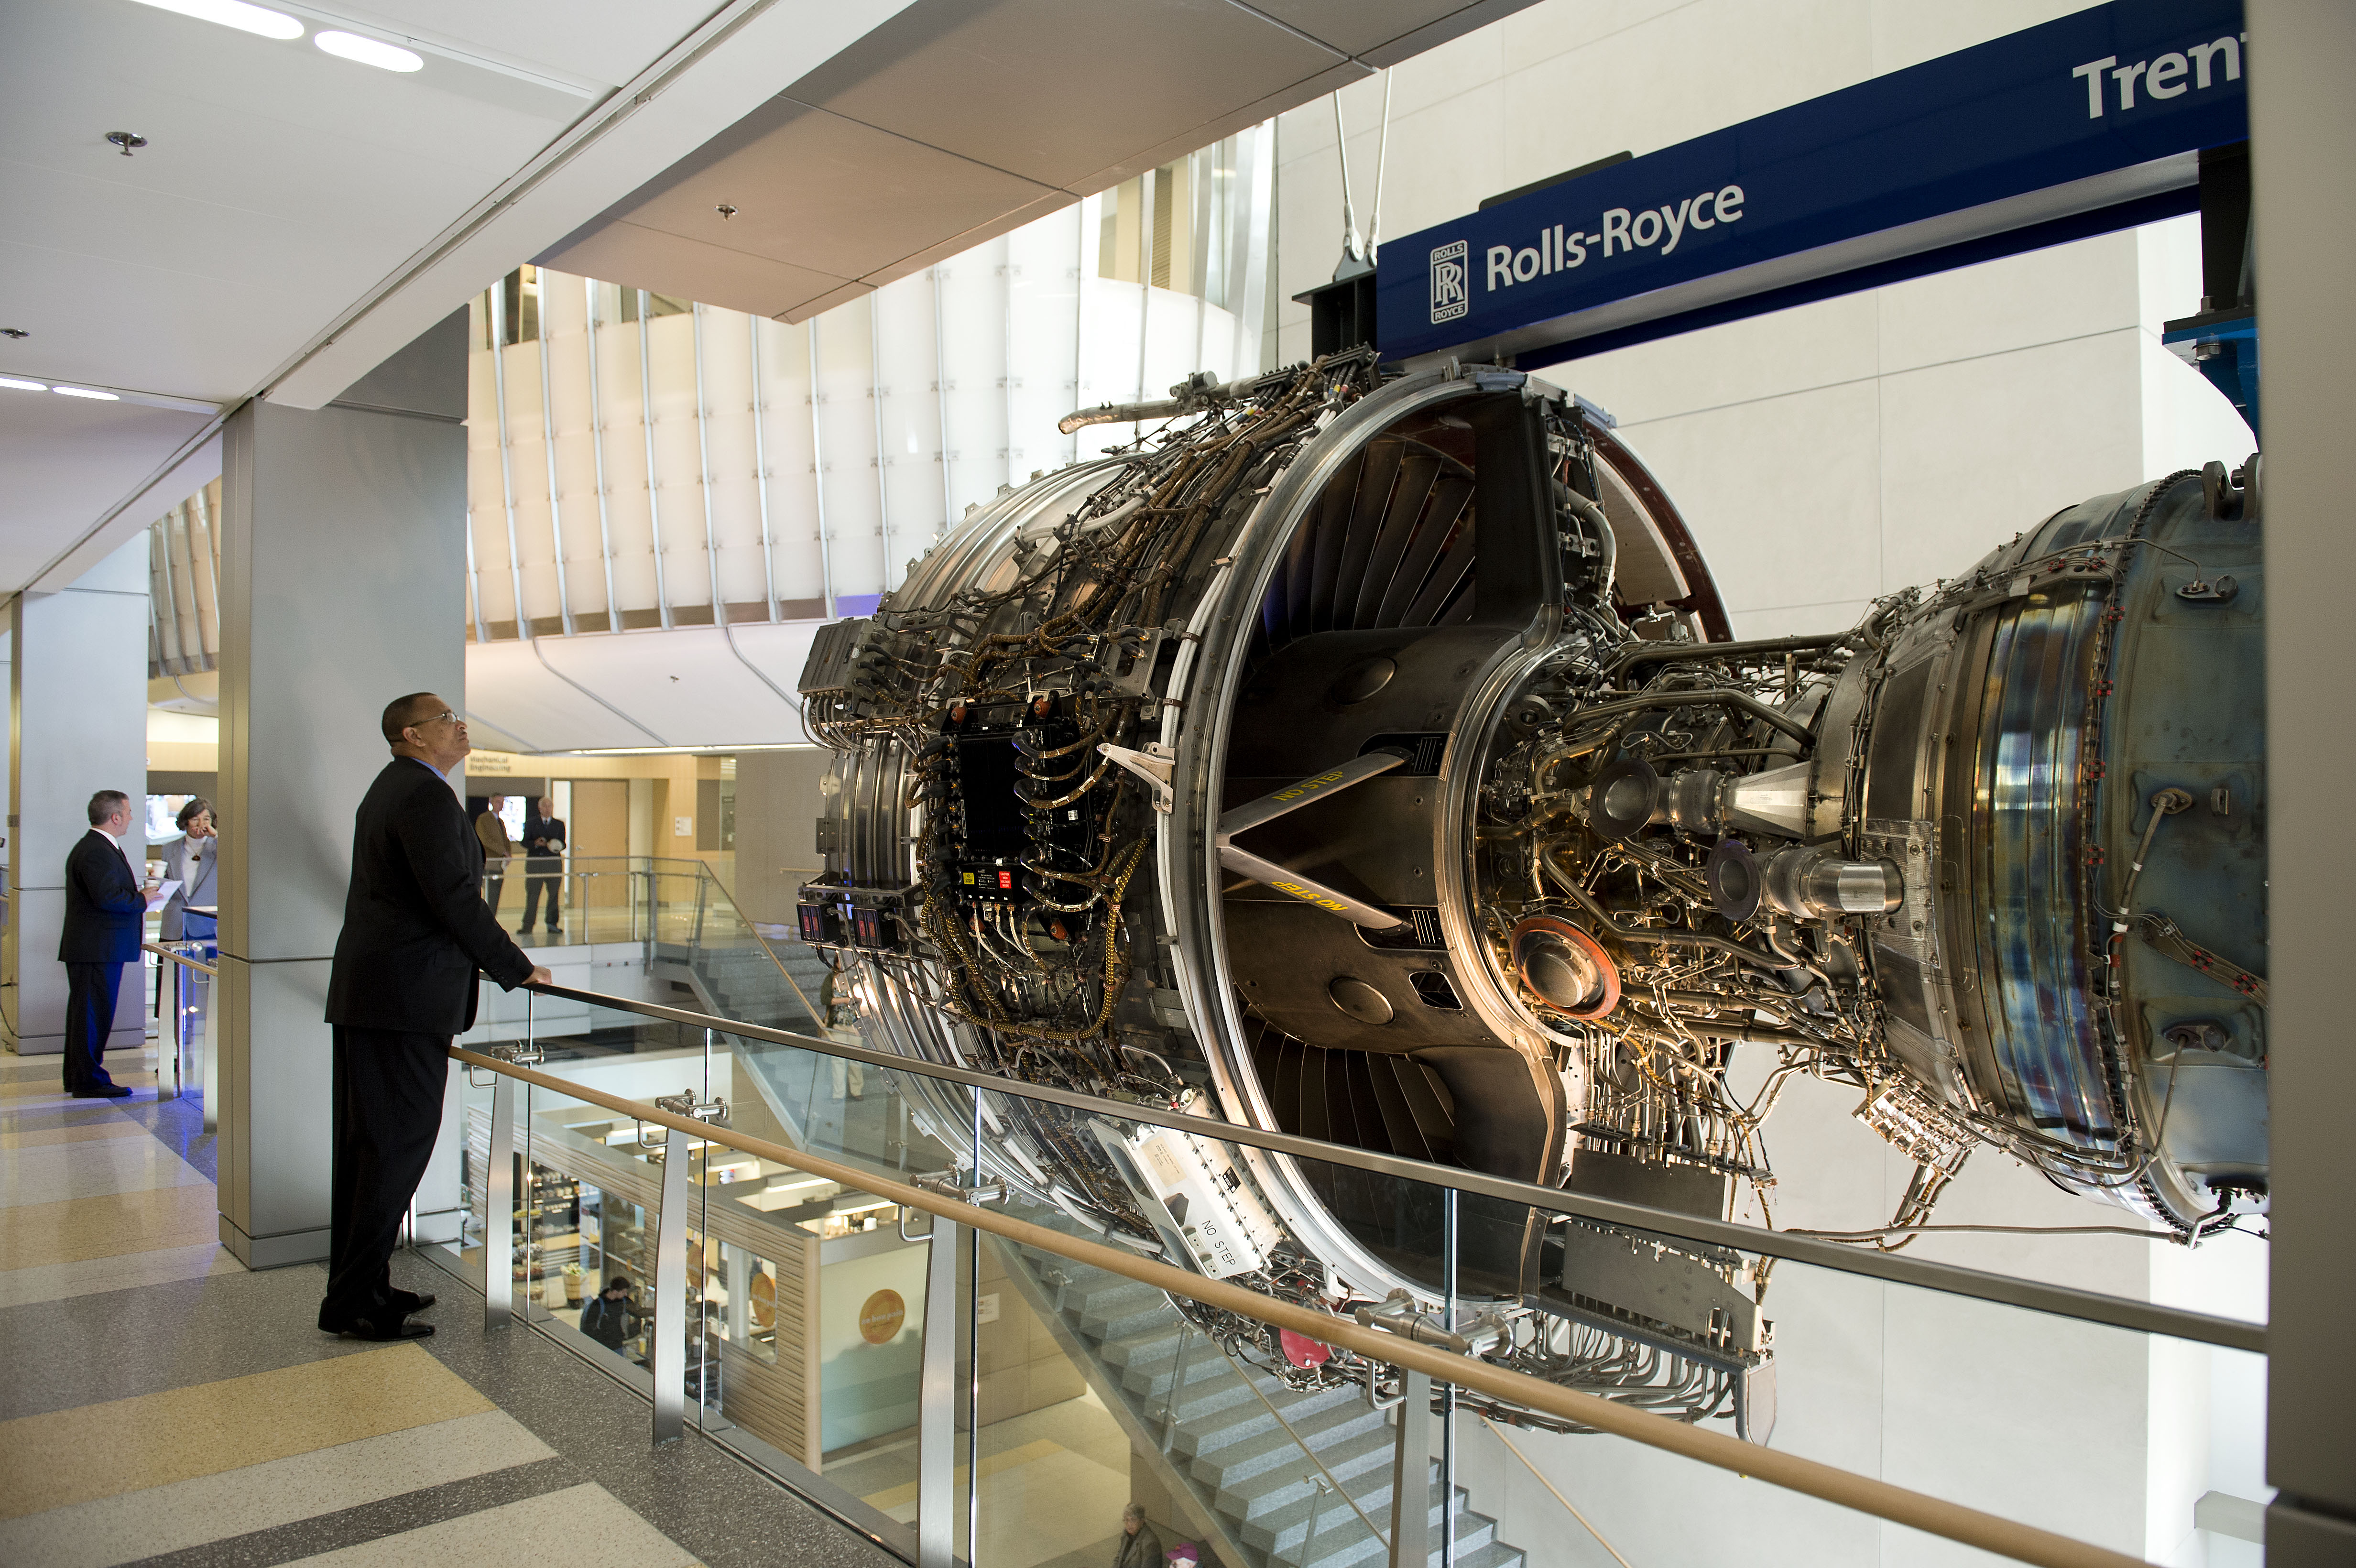 Rolls-Royce, the global power systems company, donated a Trent 1000 jet engine to Virginia Tech.